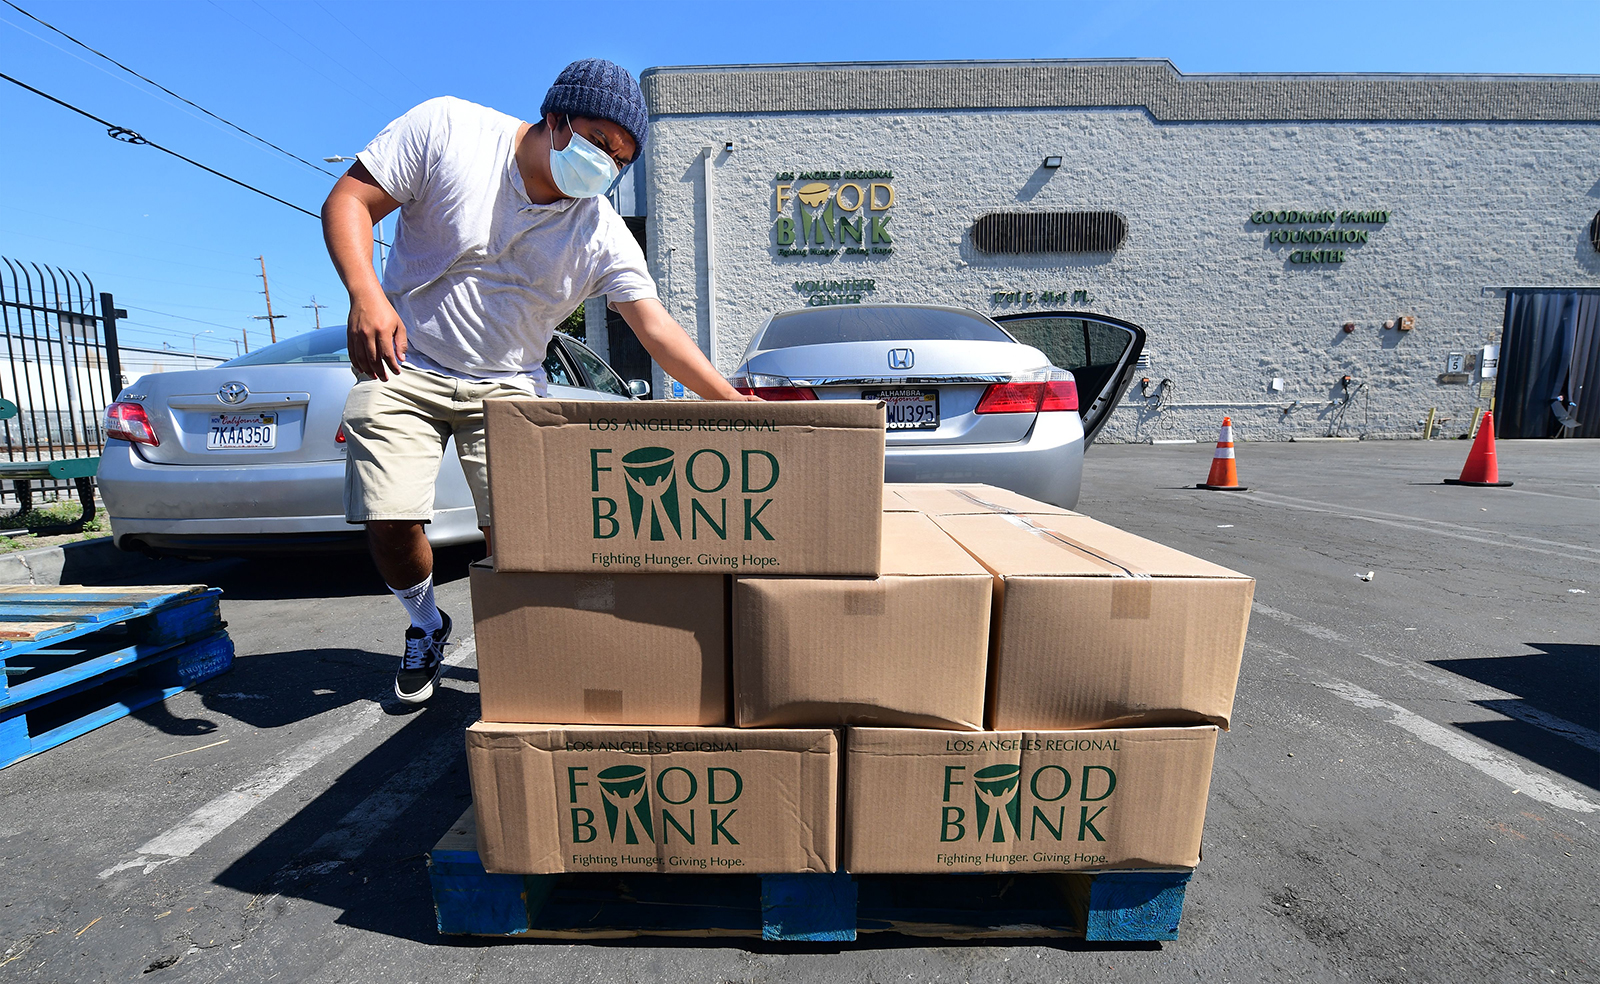 People load their vehicles with boxes of food at a Los Angeles Regional Food Bank on May 5, in Los Angeles, California. Food Banks across the United States are seeing numbers and people they have never seen before amid unprecedented unemployment.